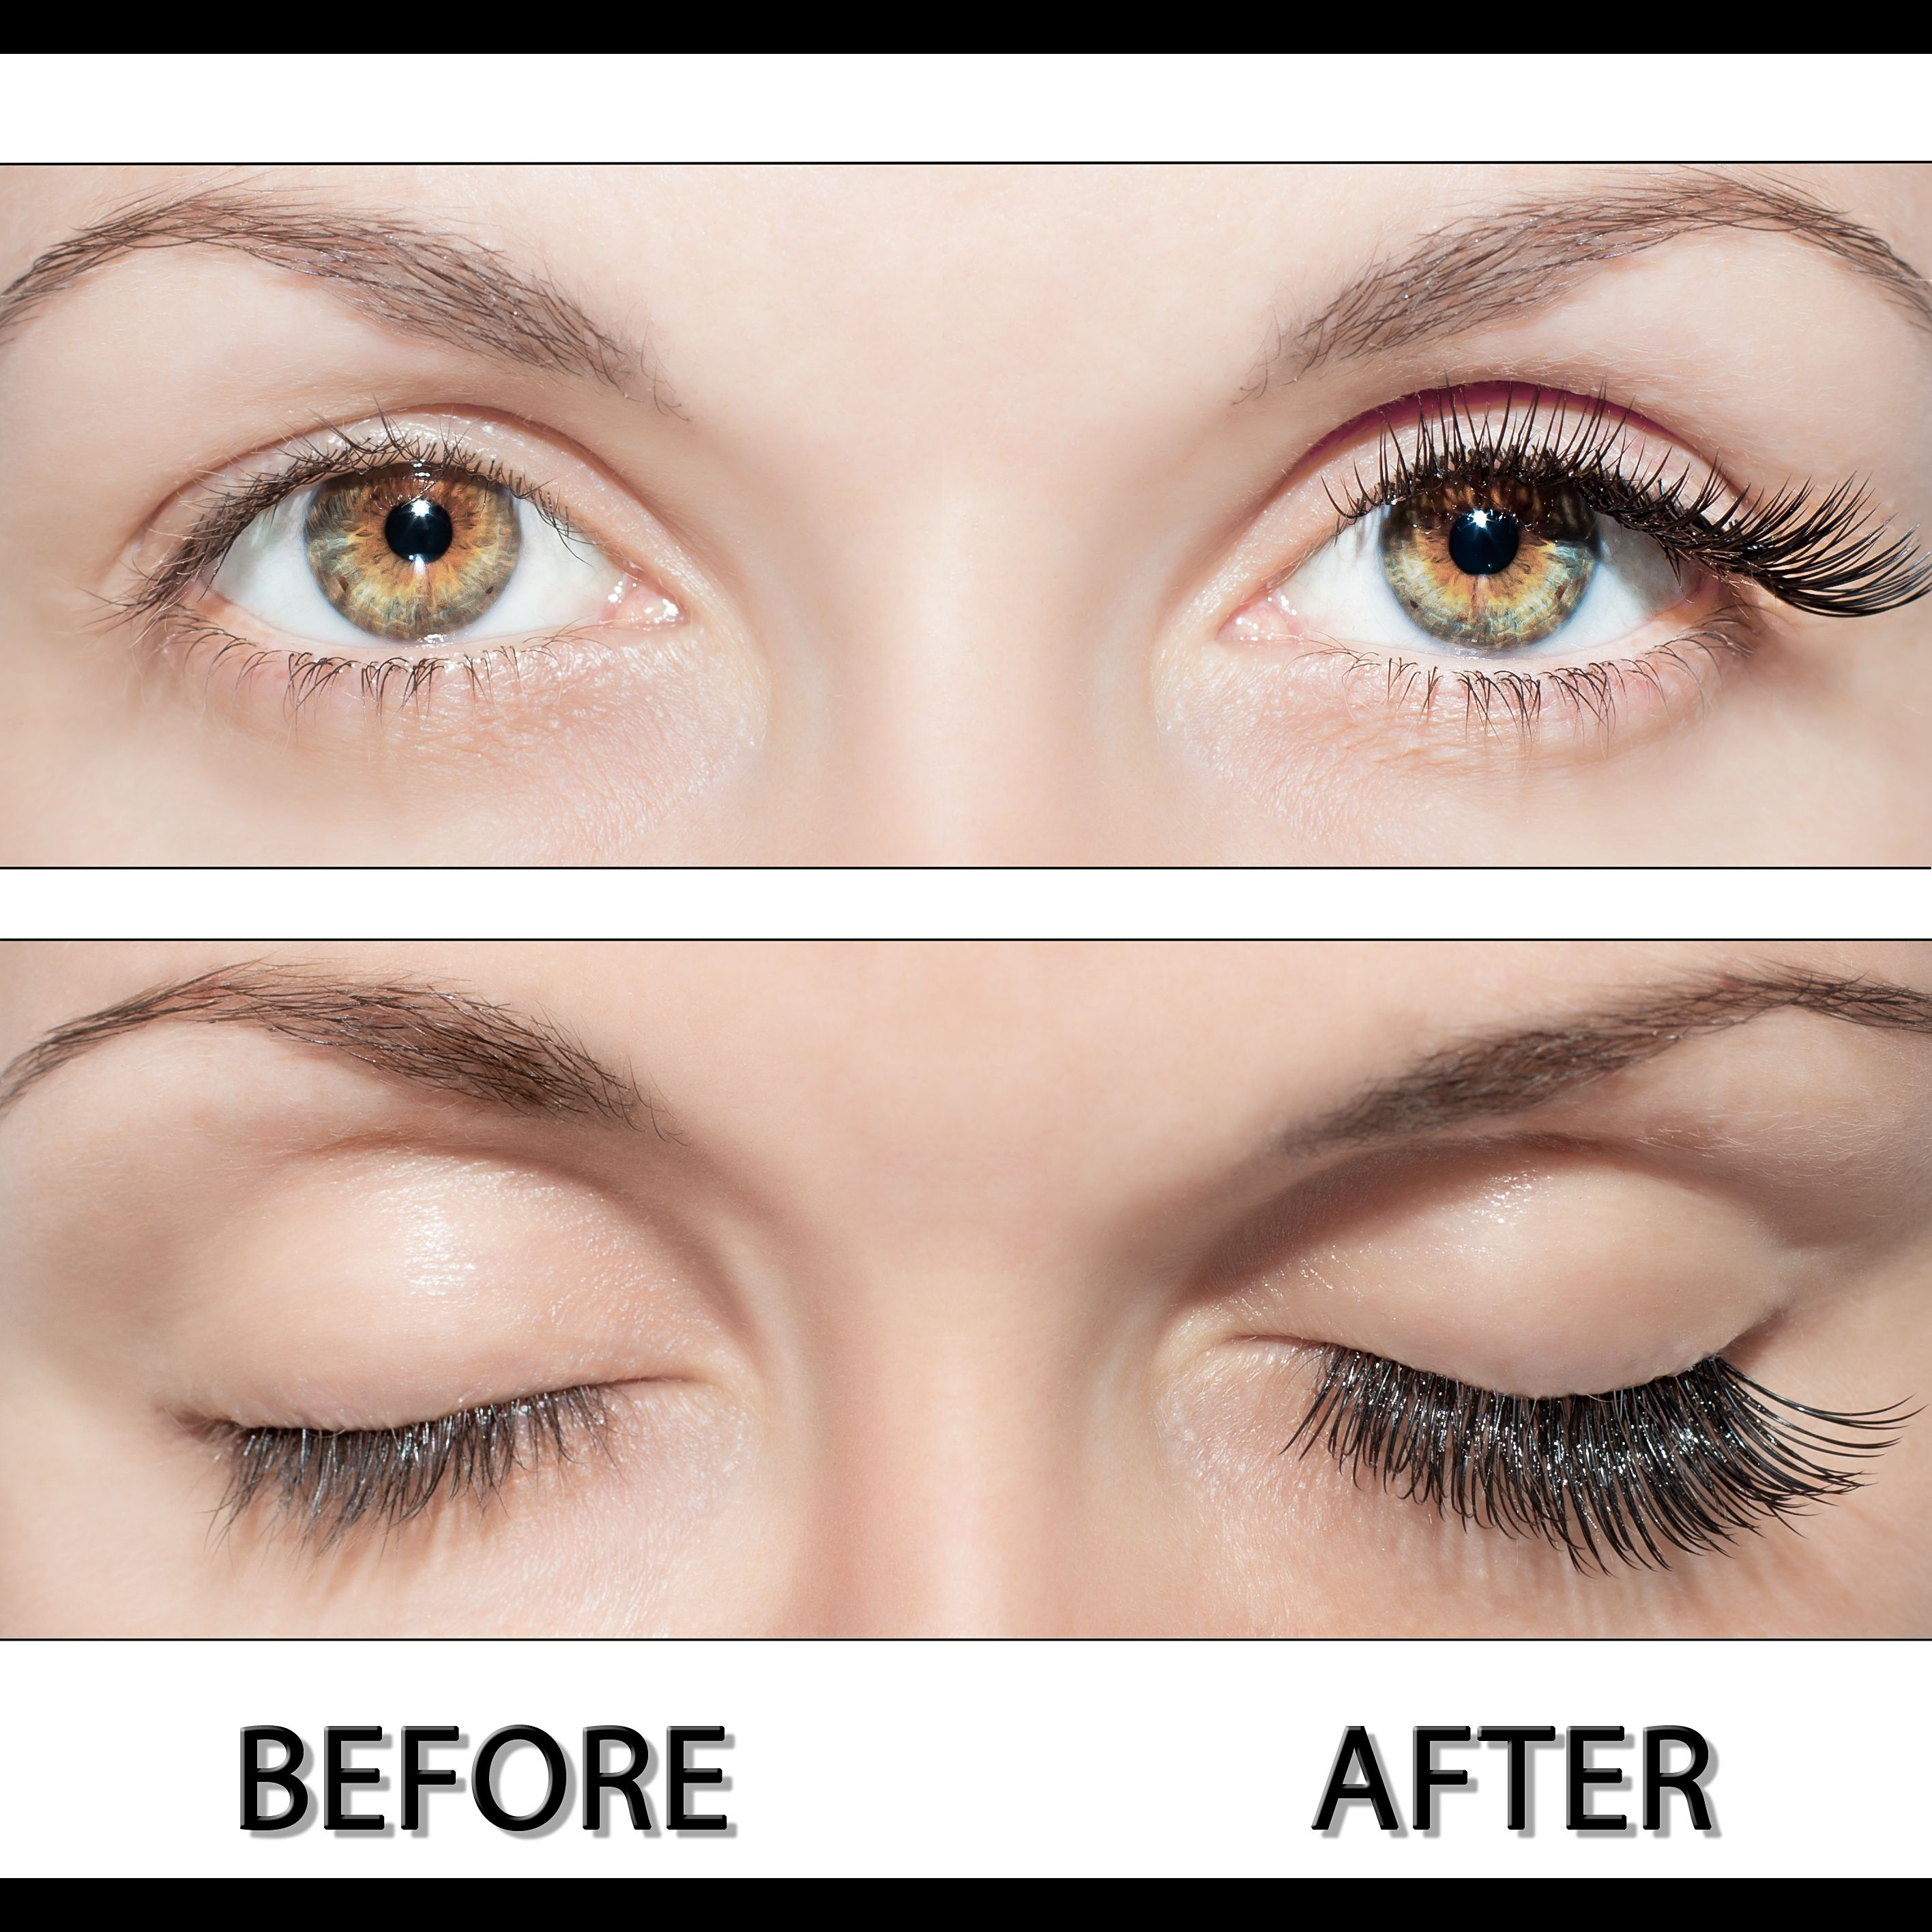 EXTENSION CIGLIA BEFORE AND AFTER PERFECT SILK LASHES